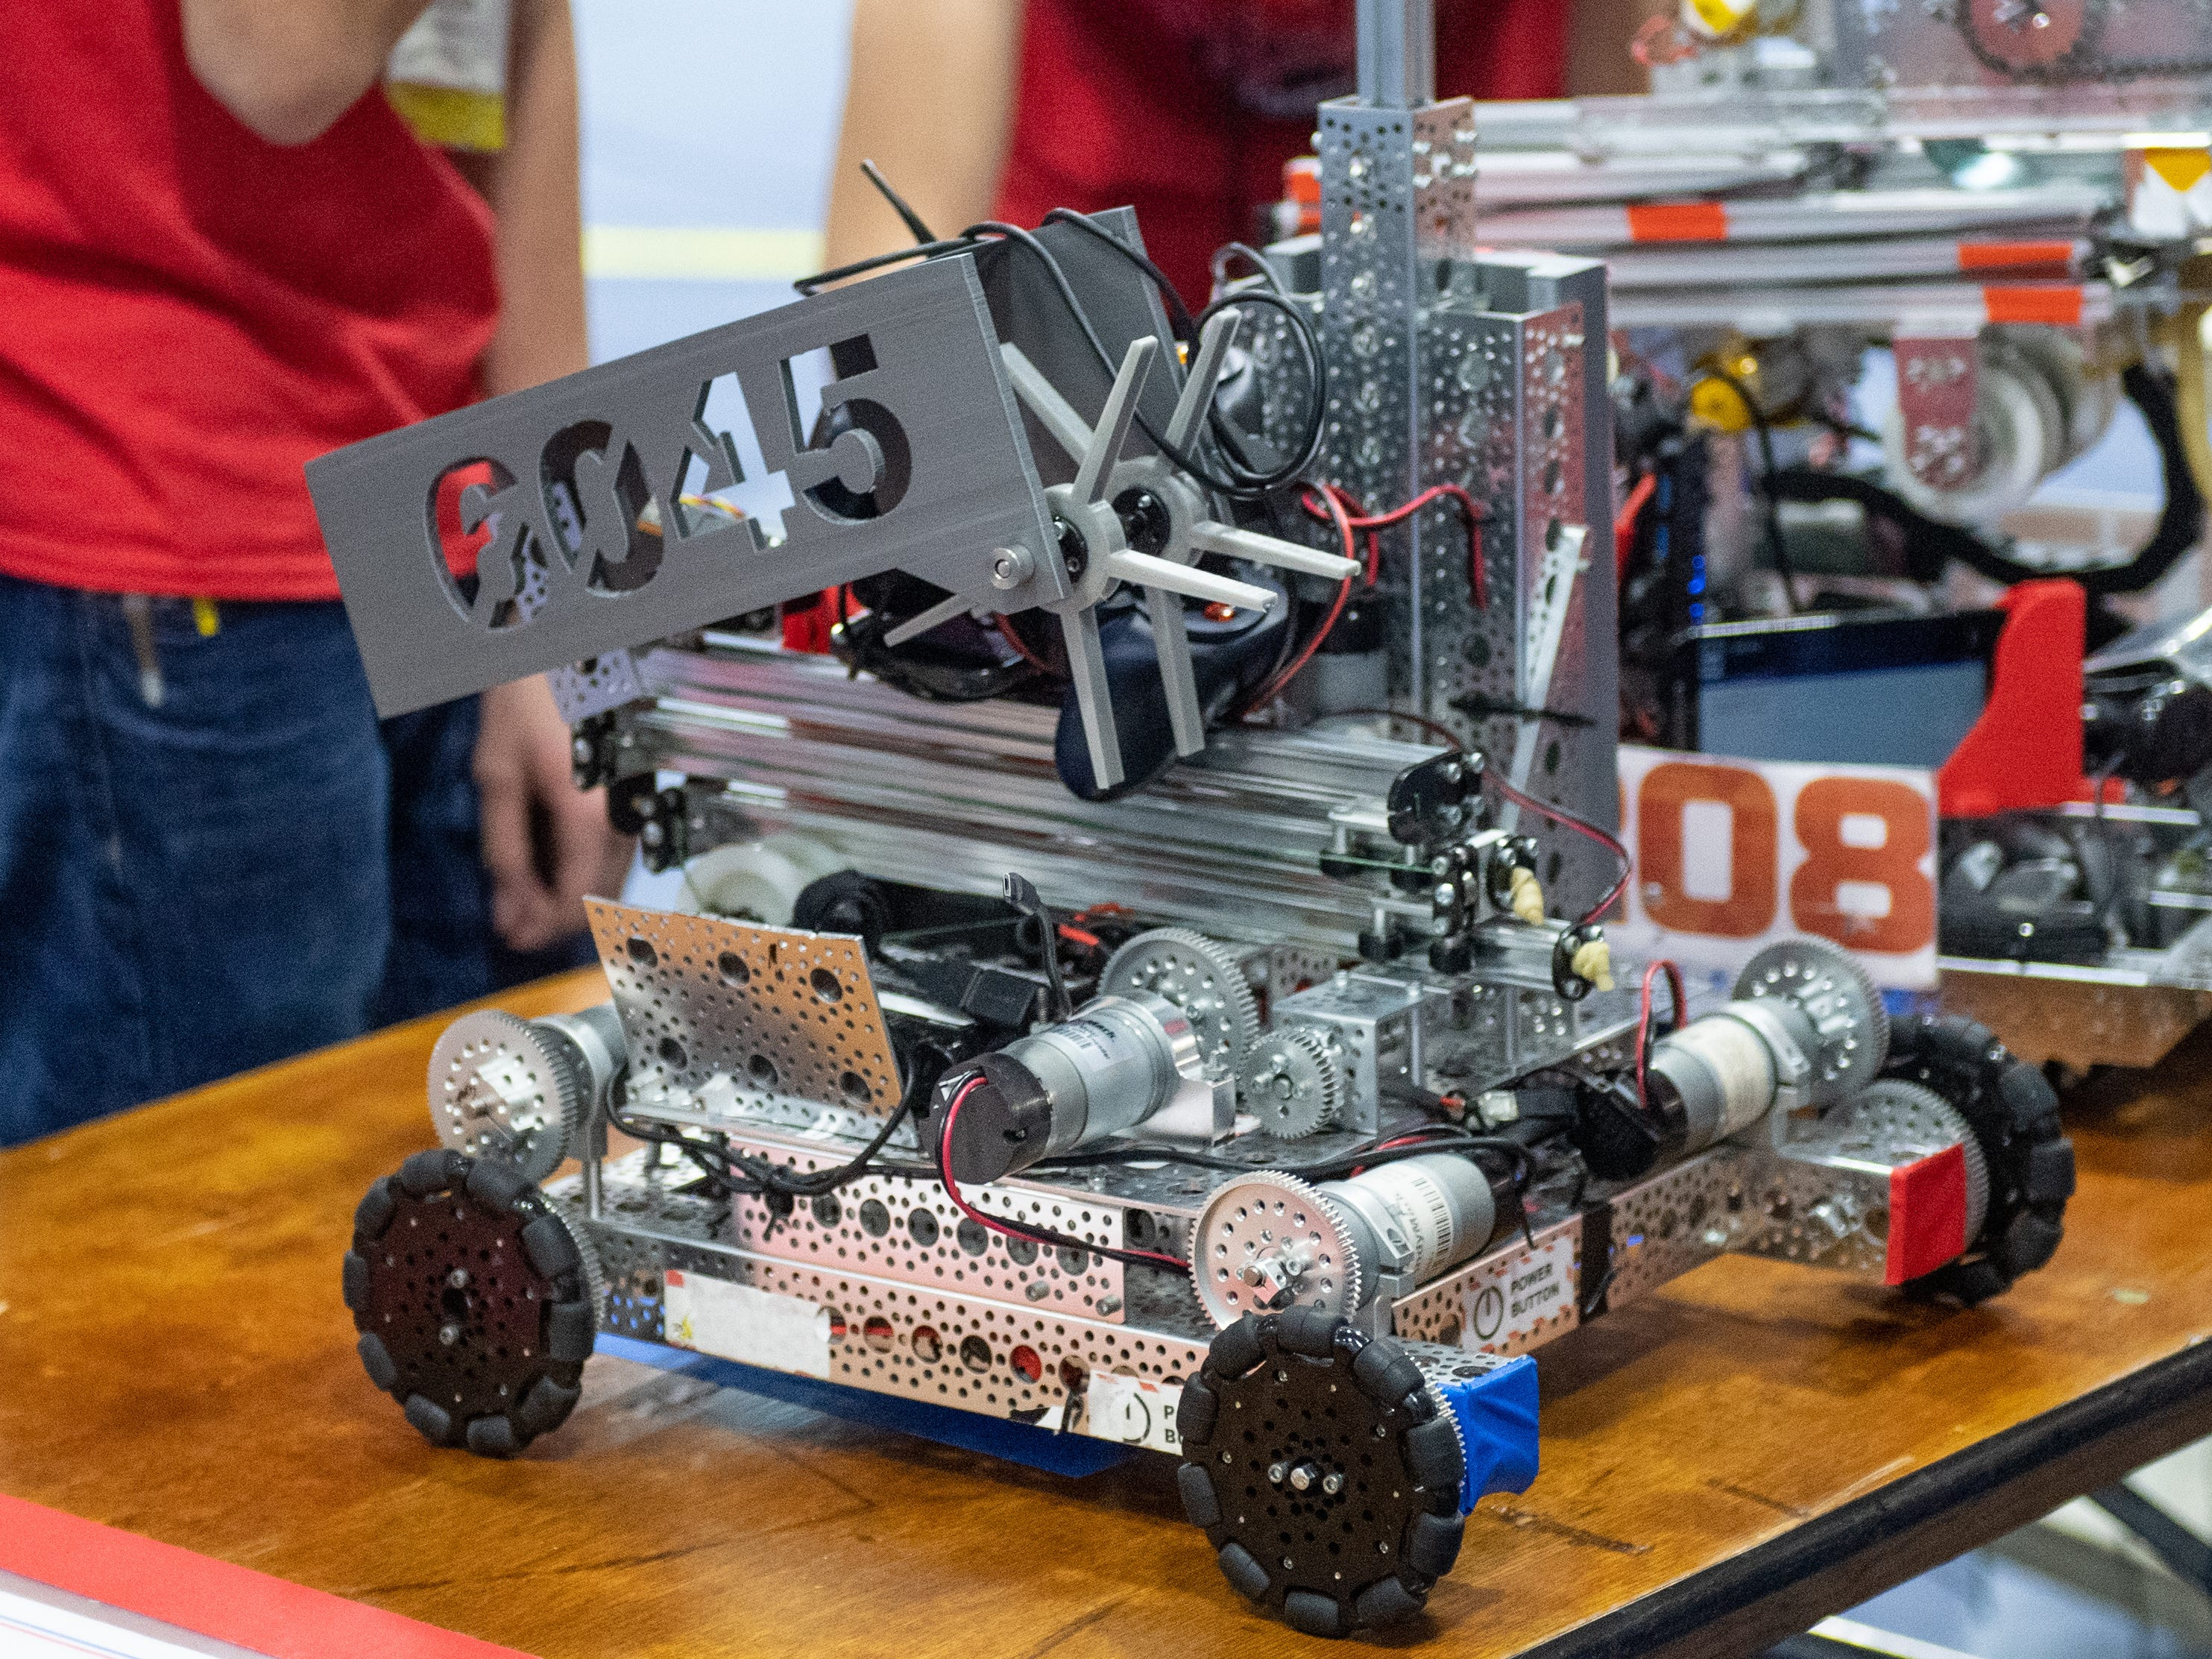 Teams are judged on sportsmanship, performance of their robots, completion of tasks, and a variety of other criteria during the First Tech Challenge robotics competition, February 2, 2019.